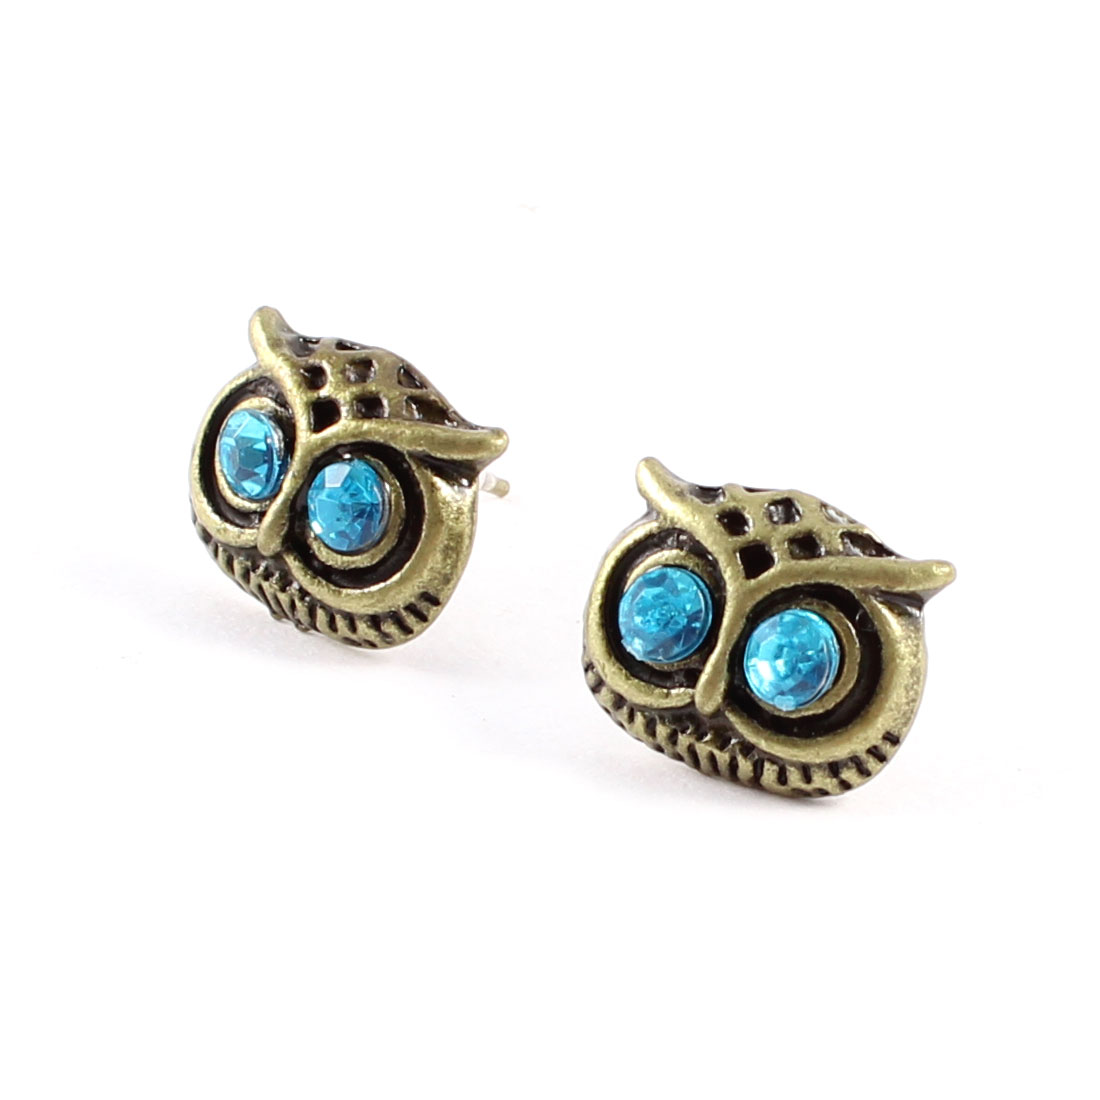 2 Pcs Blue Plastic Rhinestone Inlaid Owl Style Stud Earrings Bronze Tone